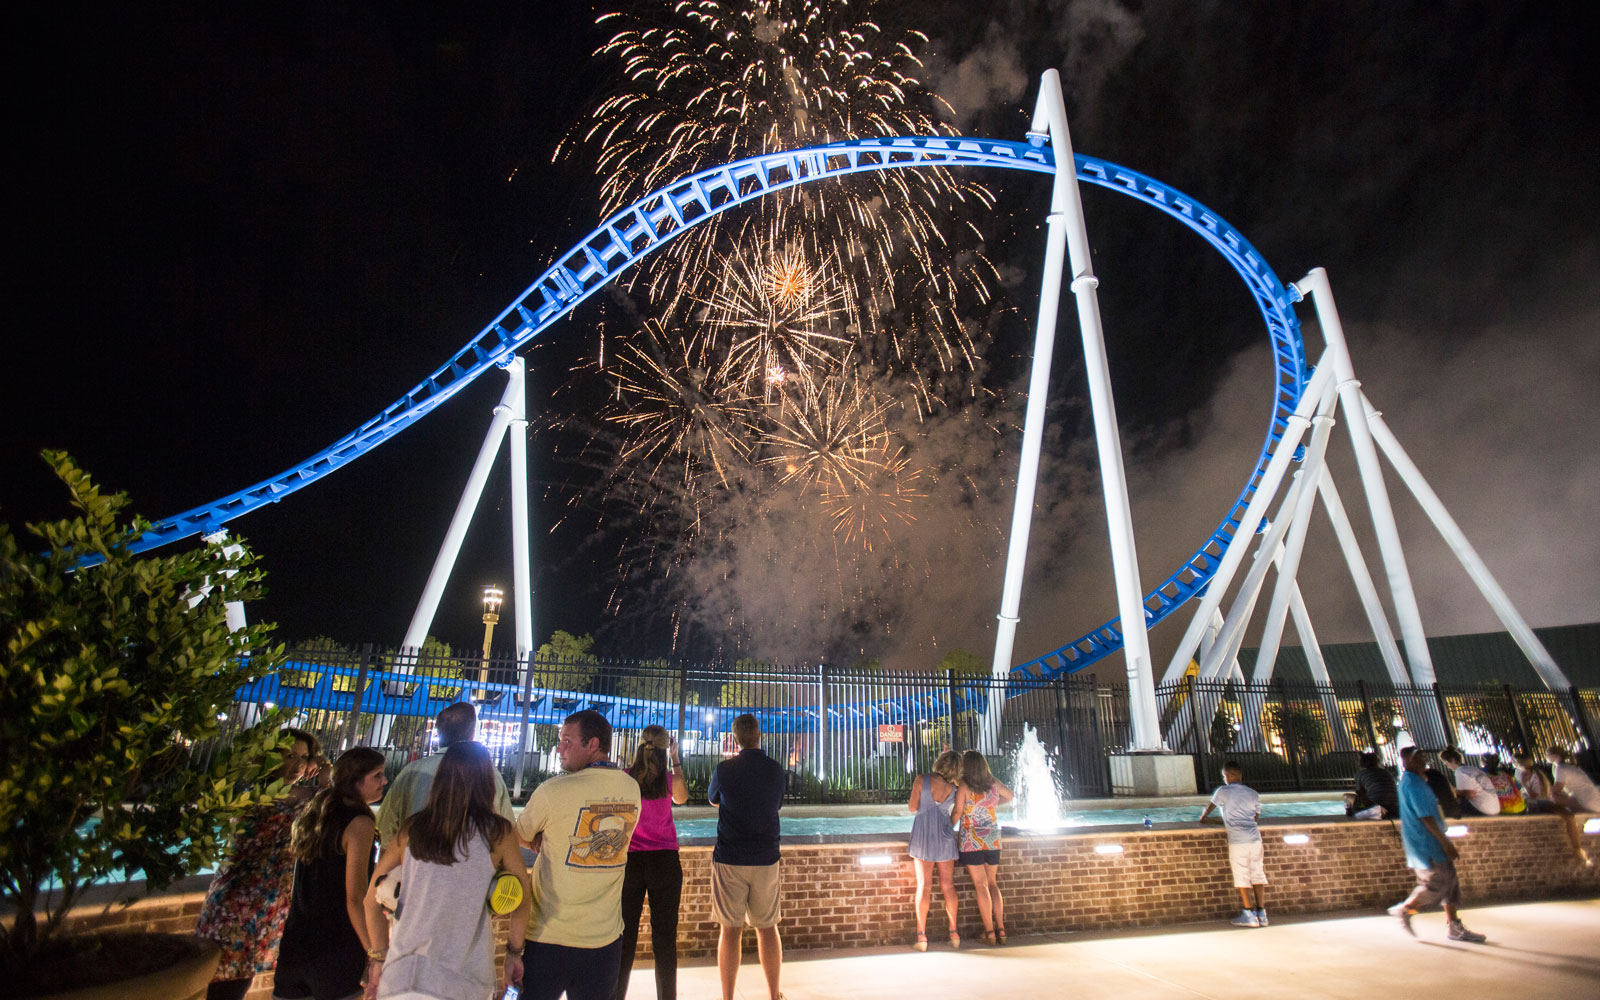 The Gulf Coast Is Getting Its First Amusement Park in Over a Decade